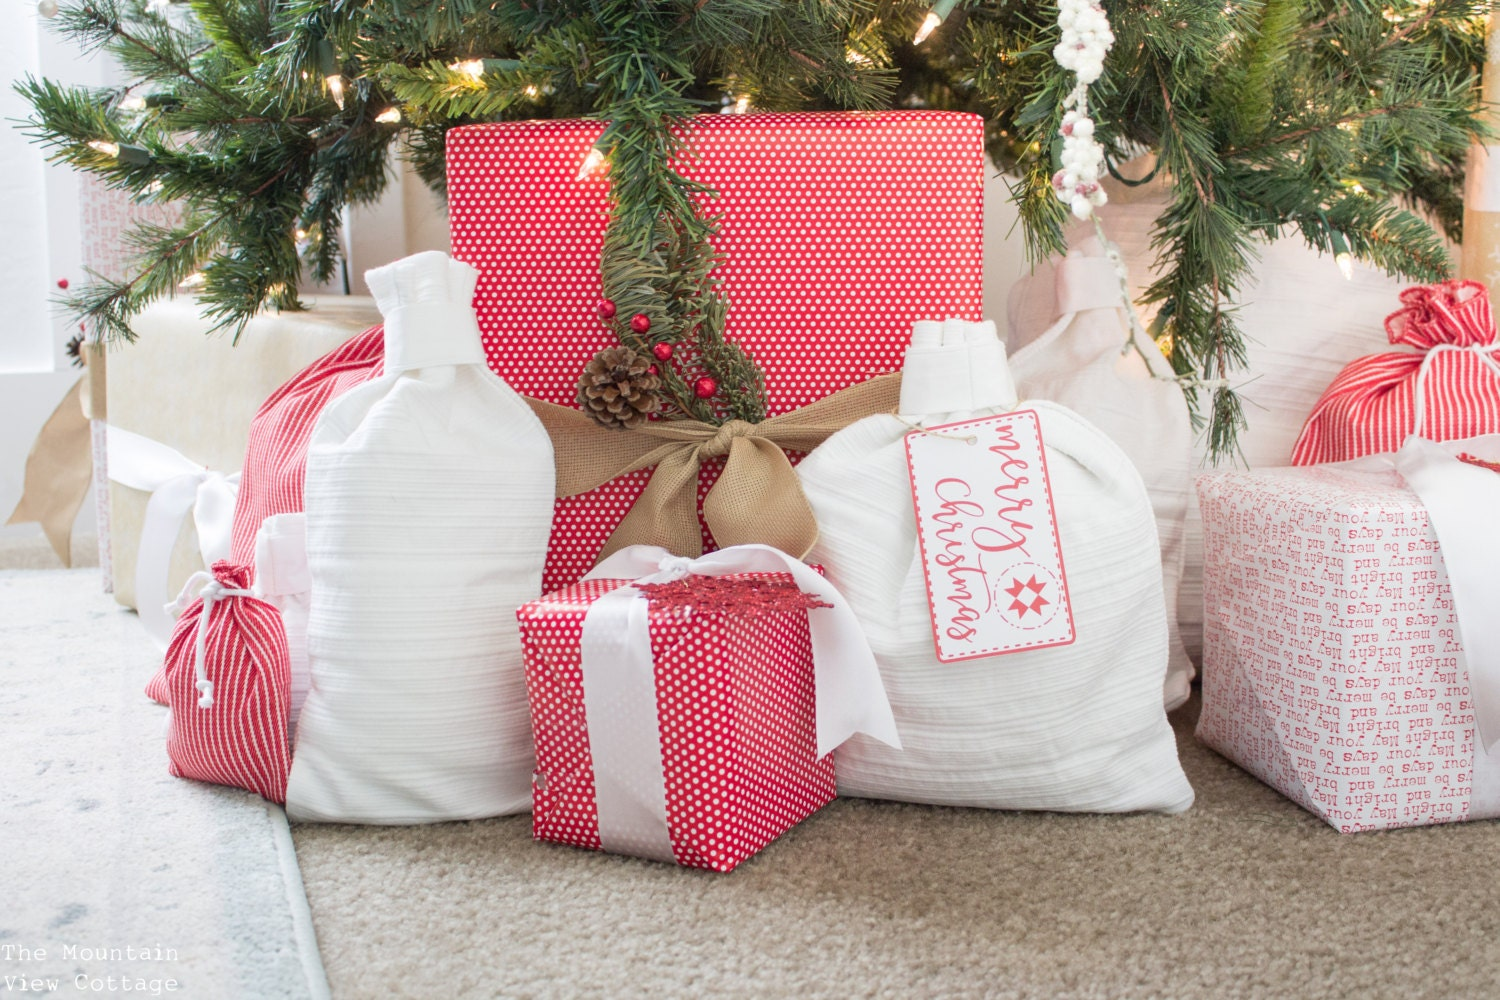 White gift bags valentines gift idea valentines fabric gift bags white gift bags valentines gift idea valentines fabric gift bags farmhouse decor neutral decor reusable wedding gift cloth gift bag negle Image collections